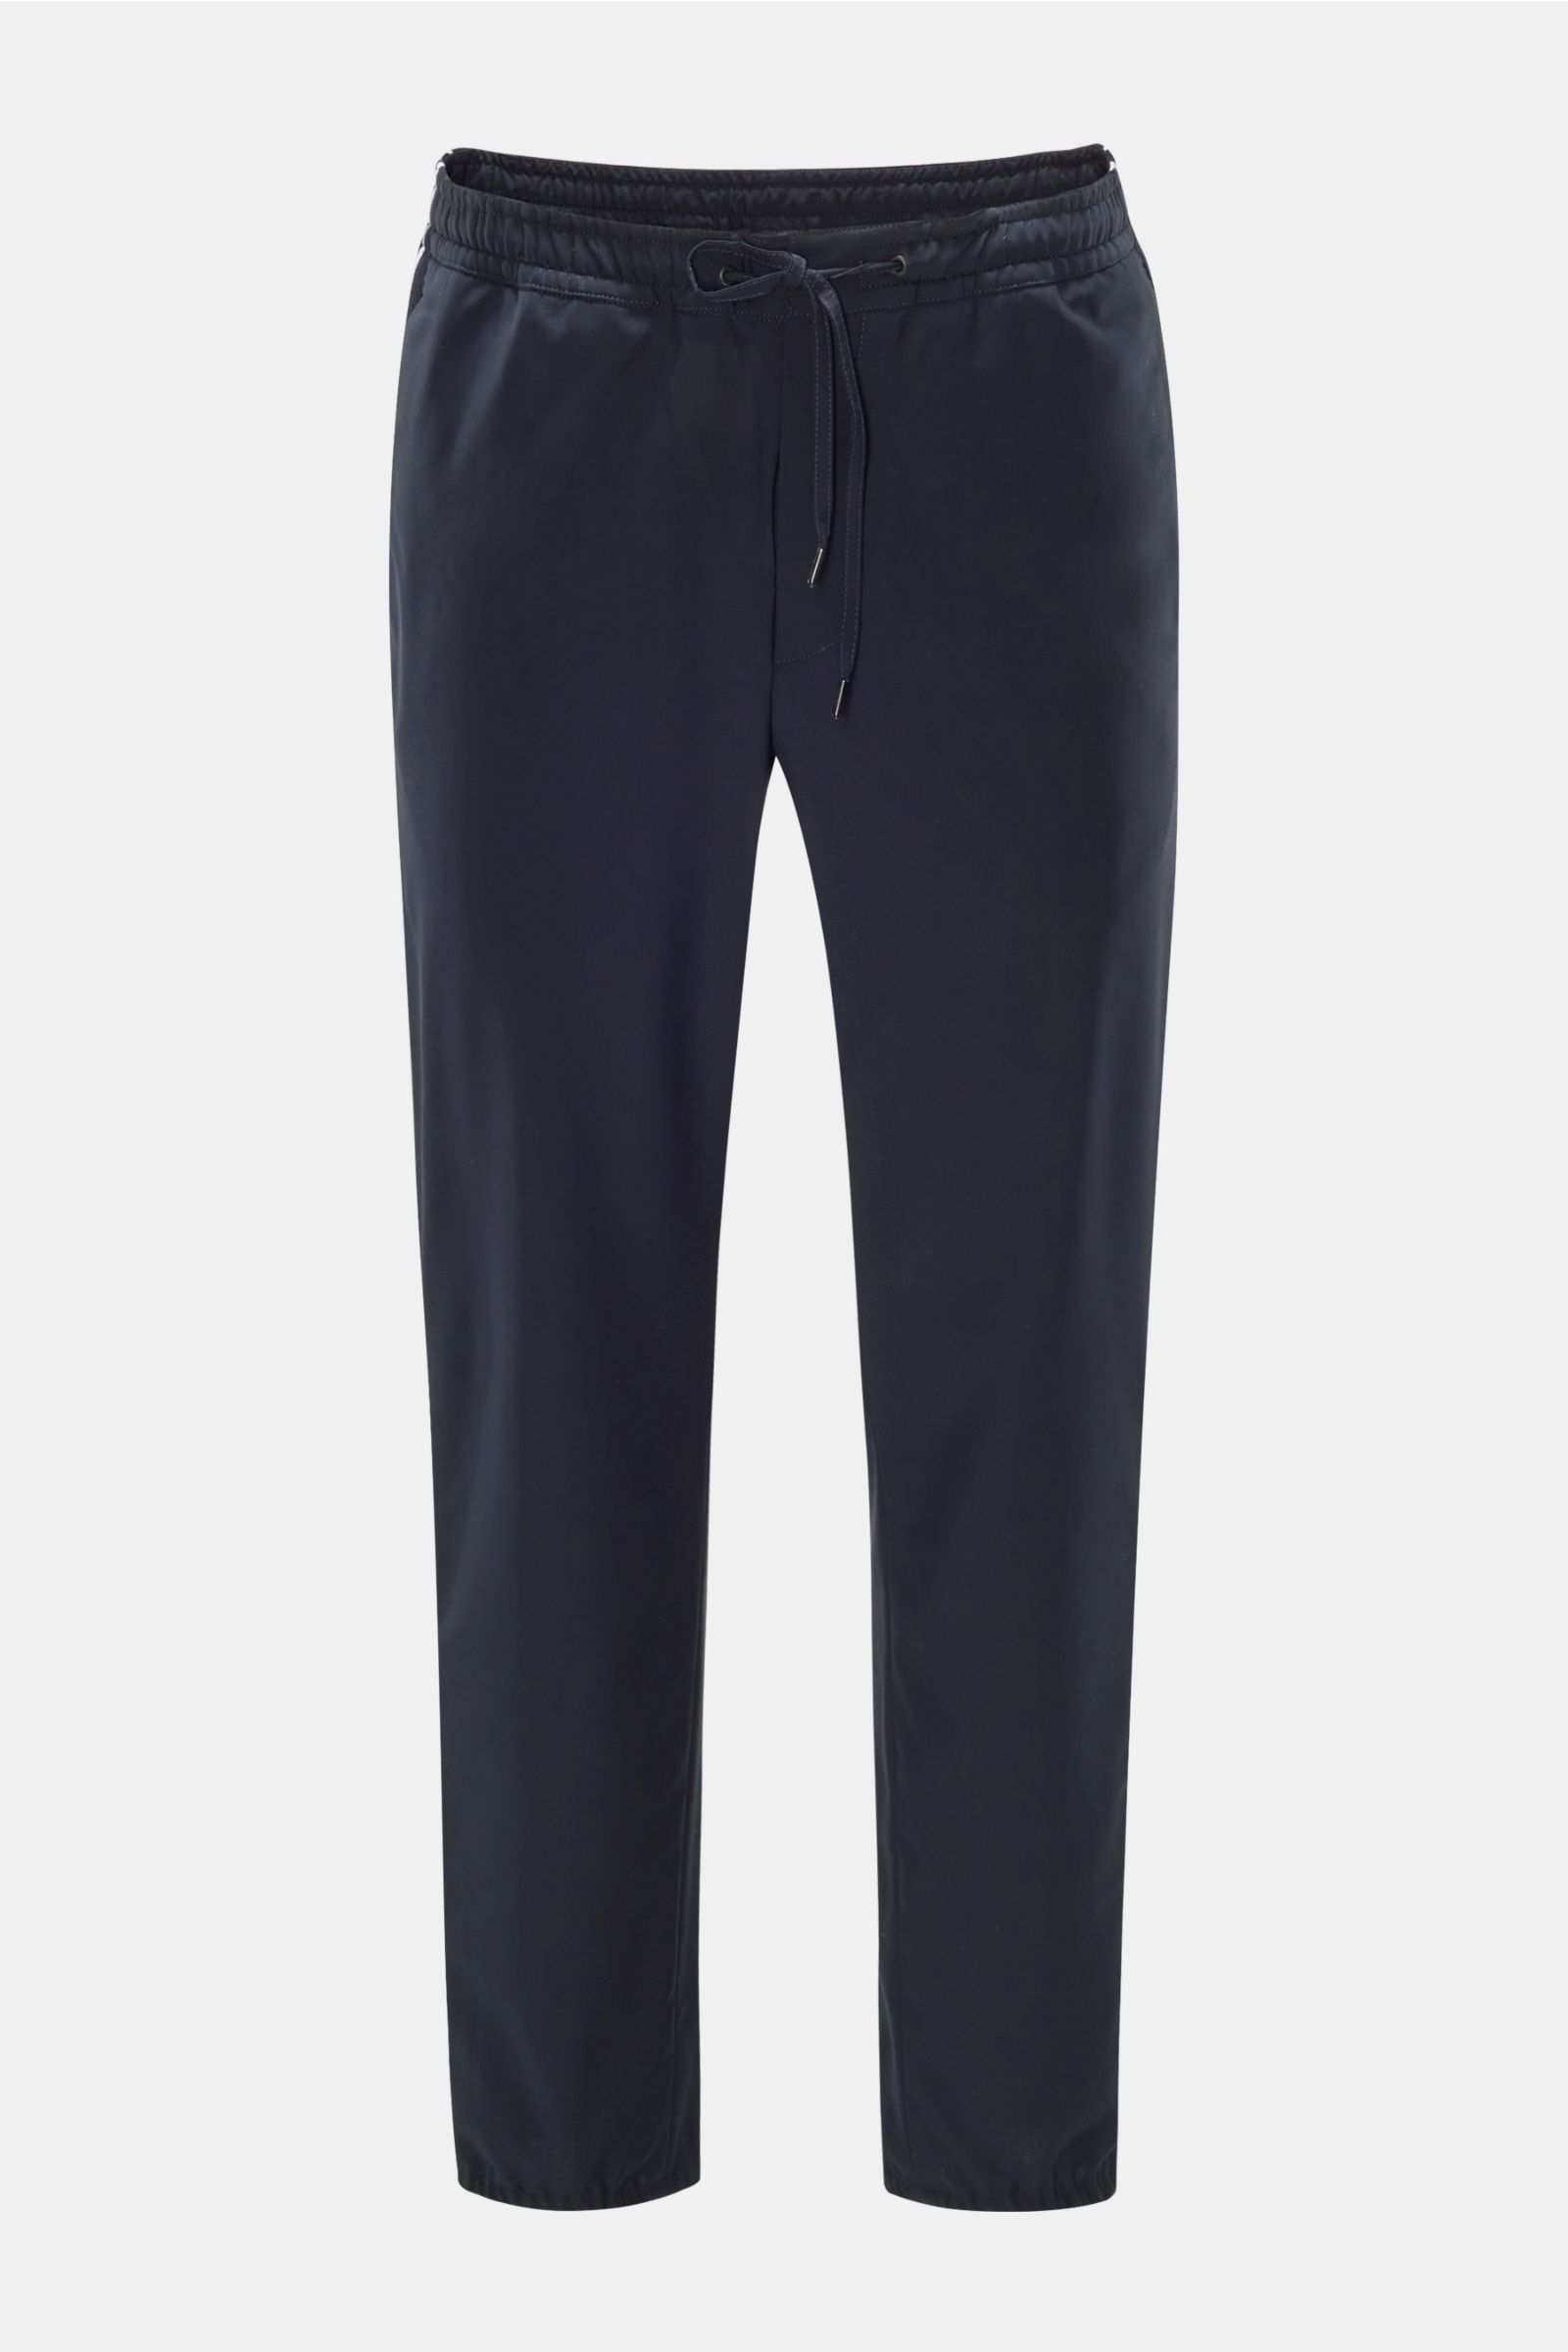 Merino Joggpants dark navy